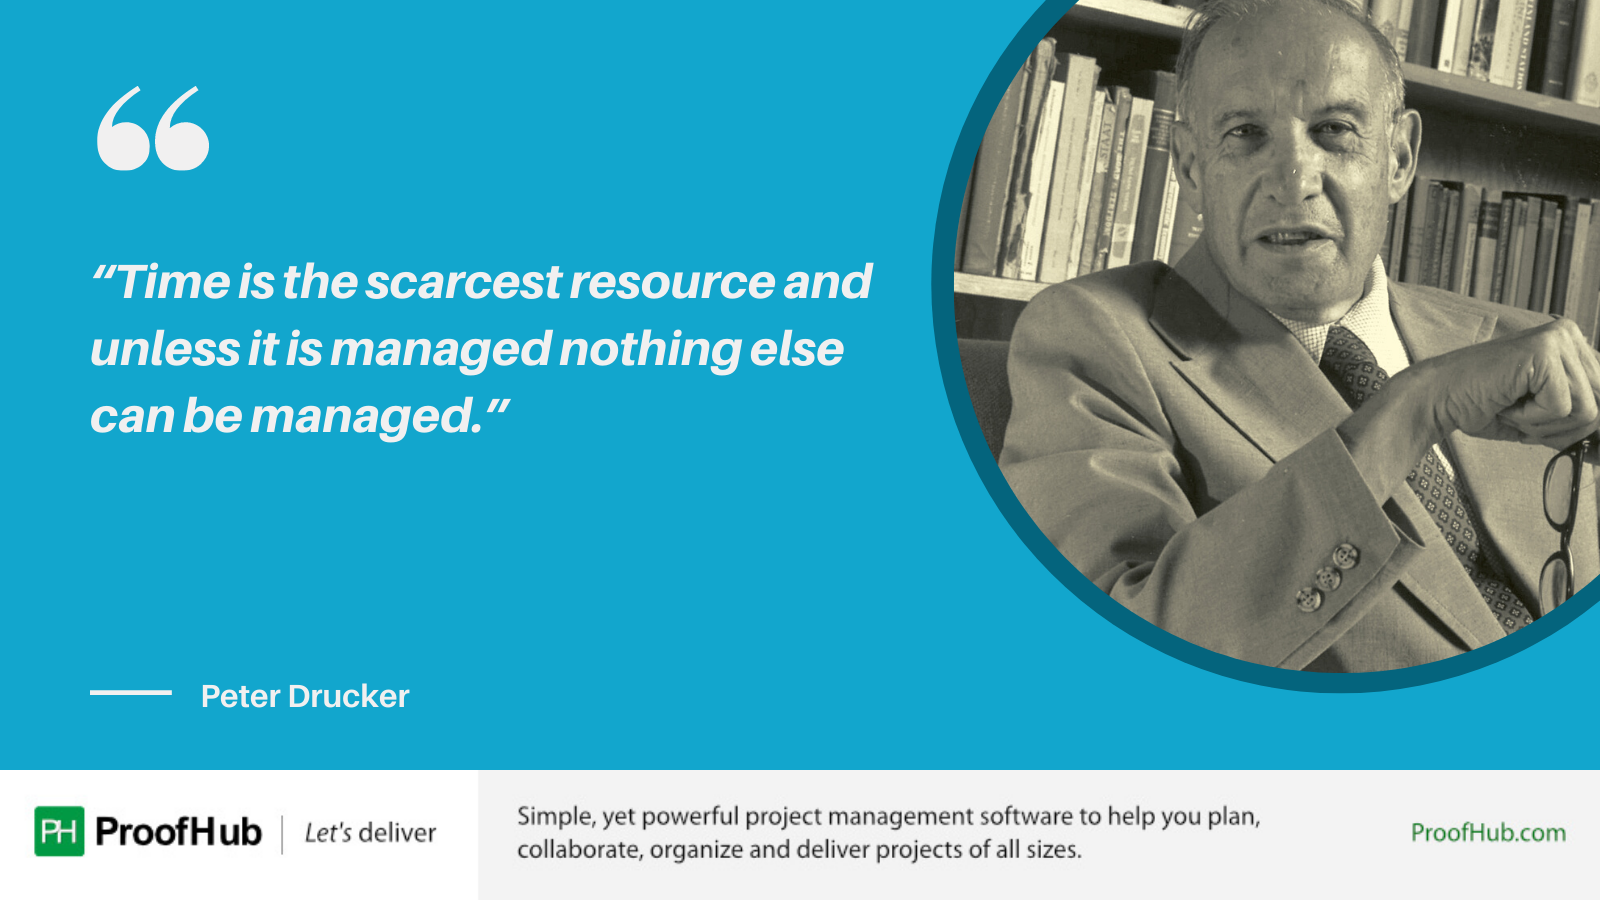 Time is the scarcest resource and unless it is managed nothing else can be managed quote by Peter Drucker